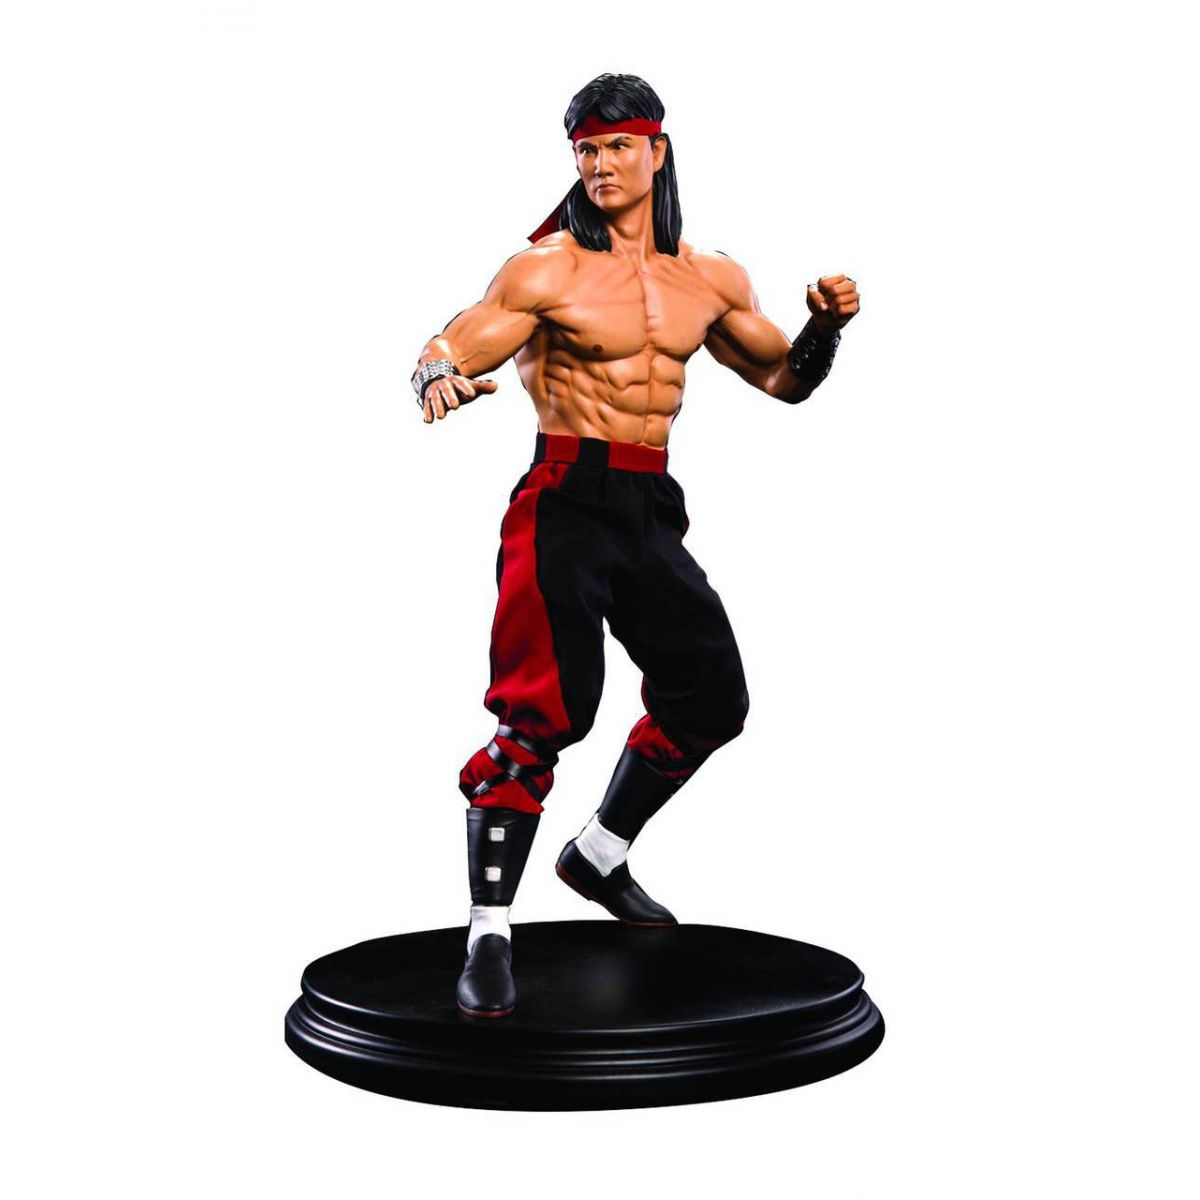 Estátua Liu Kang: Mortal Kombat 1/4 - Pop Culture Shock